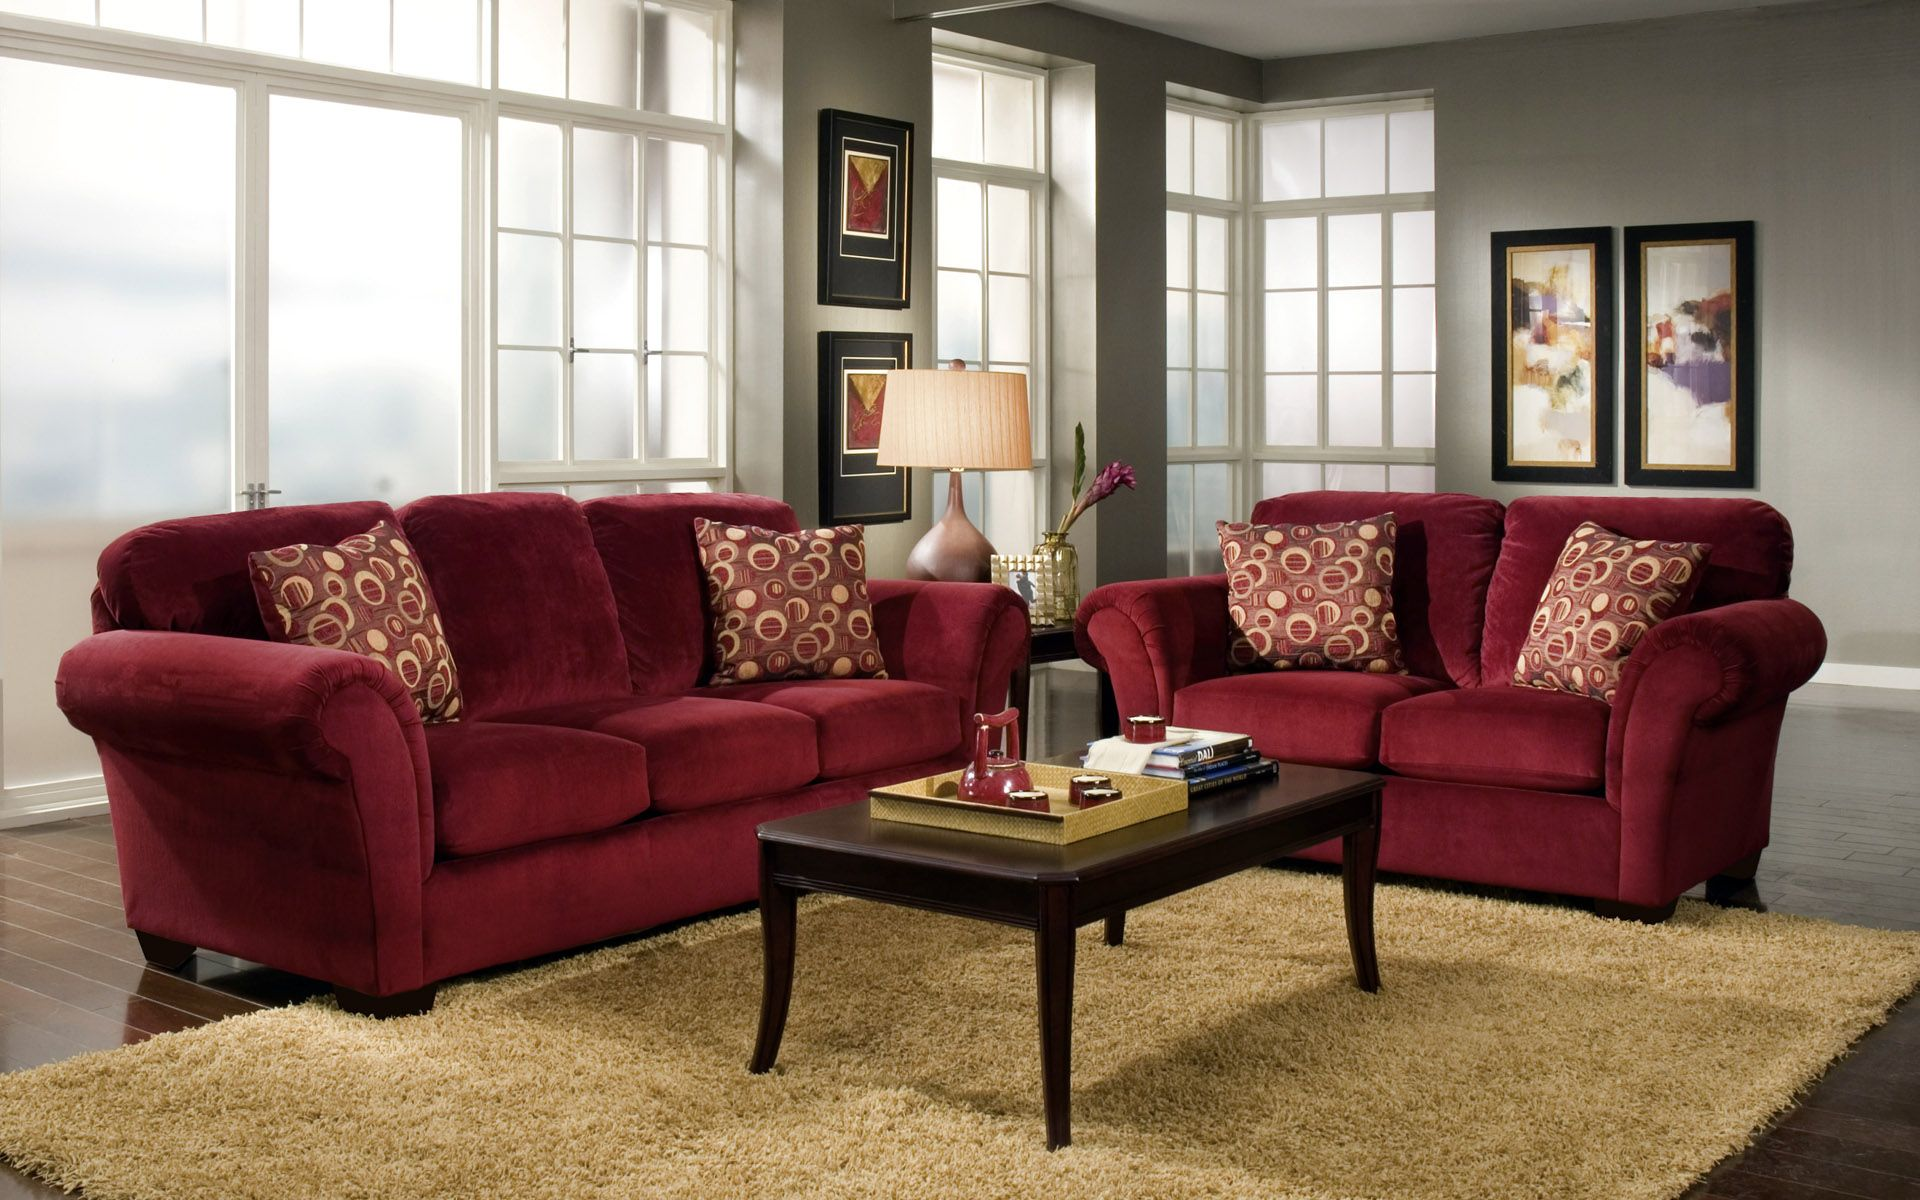 Pin By Melissa Cotton On Interior Design Home Decor Red Couch Living Room Red Sofa Living Room Red Sofa Living